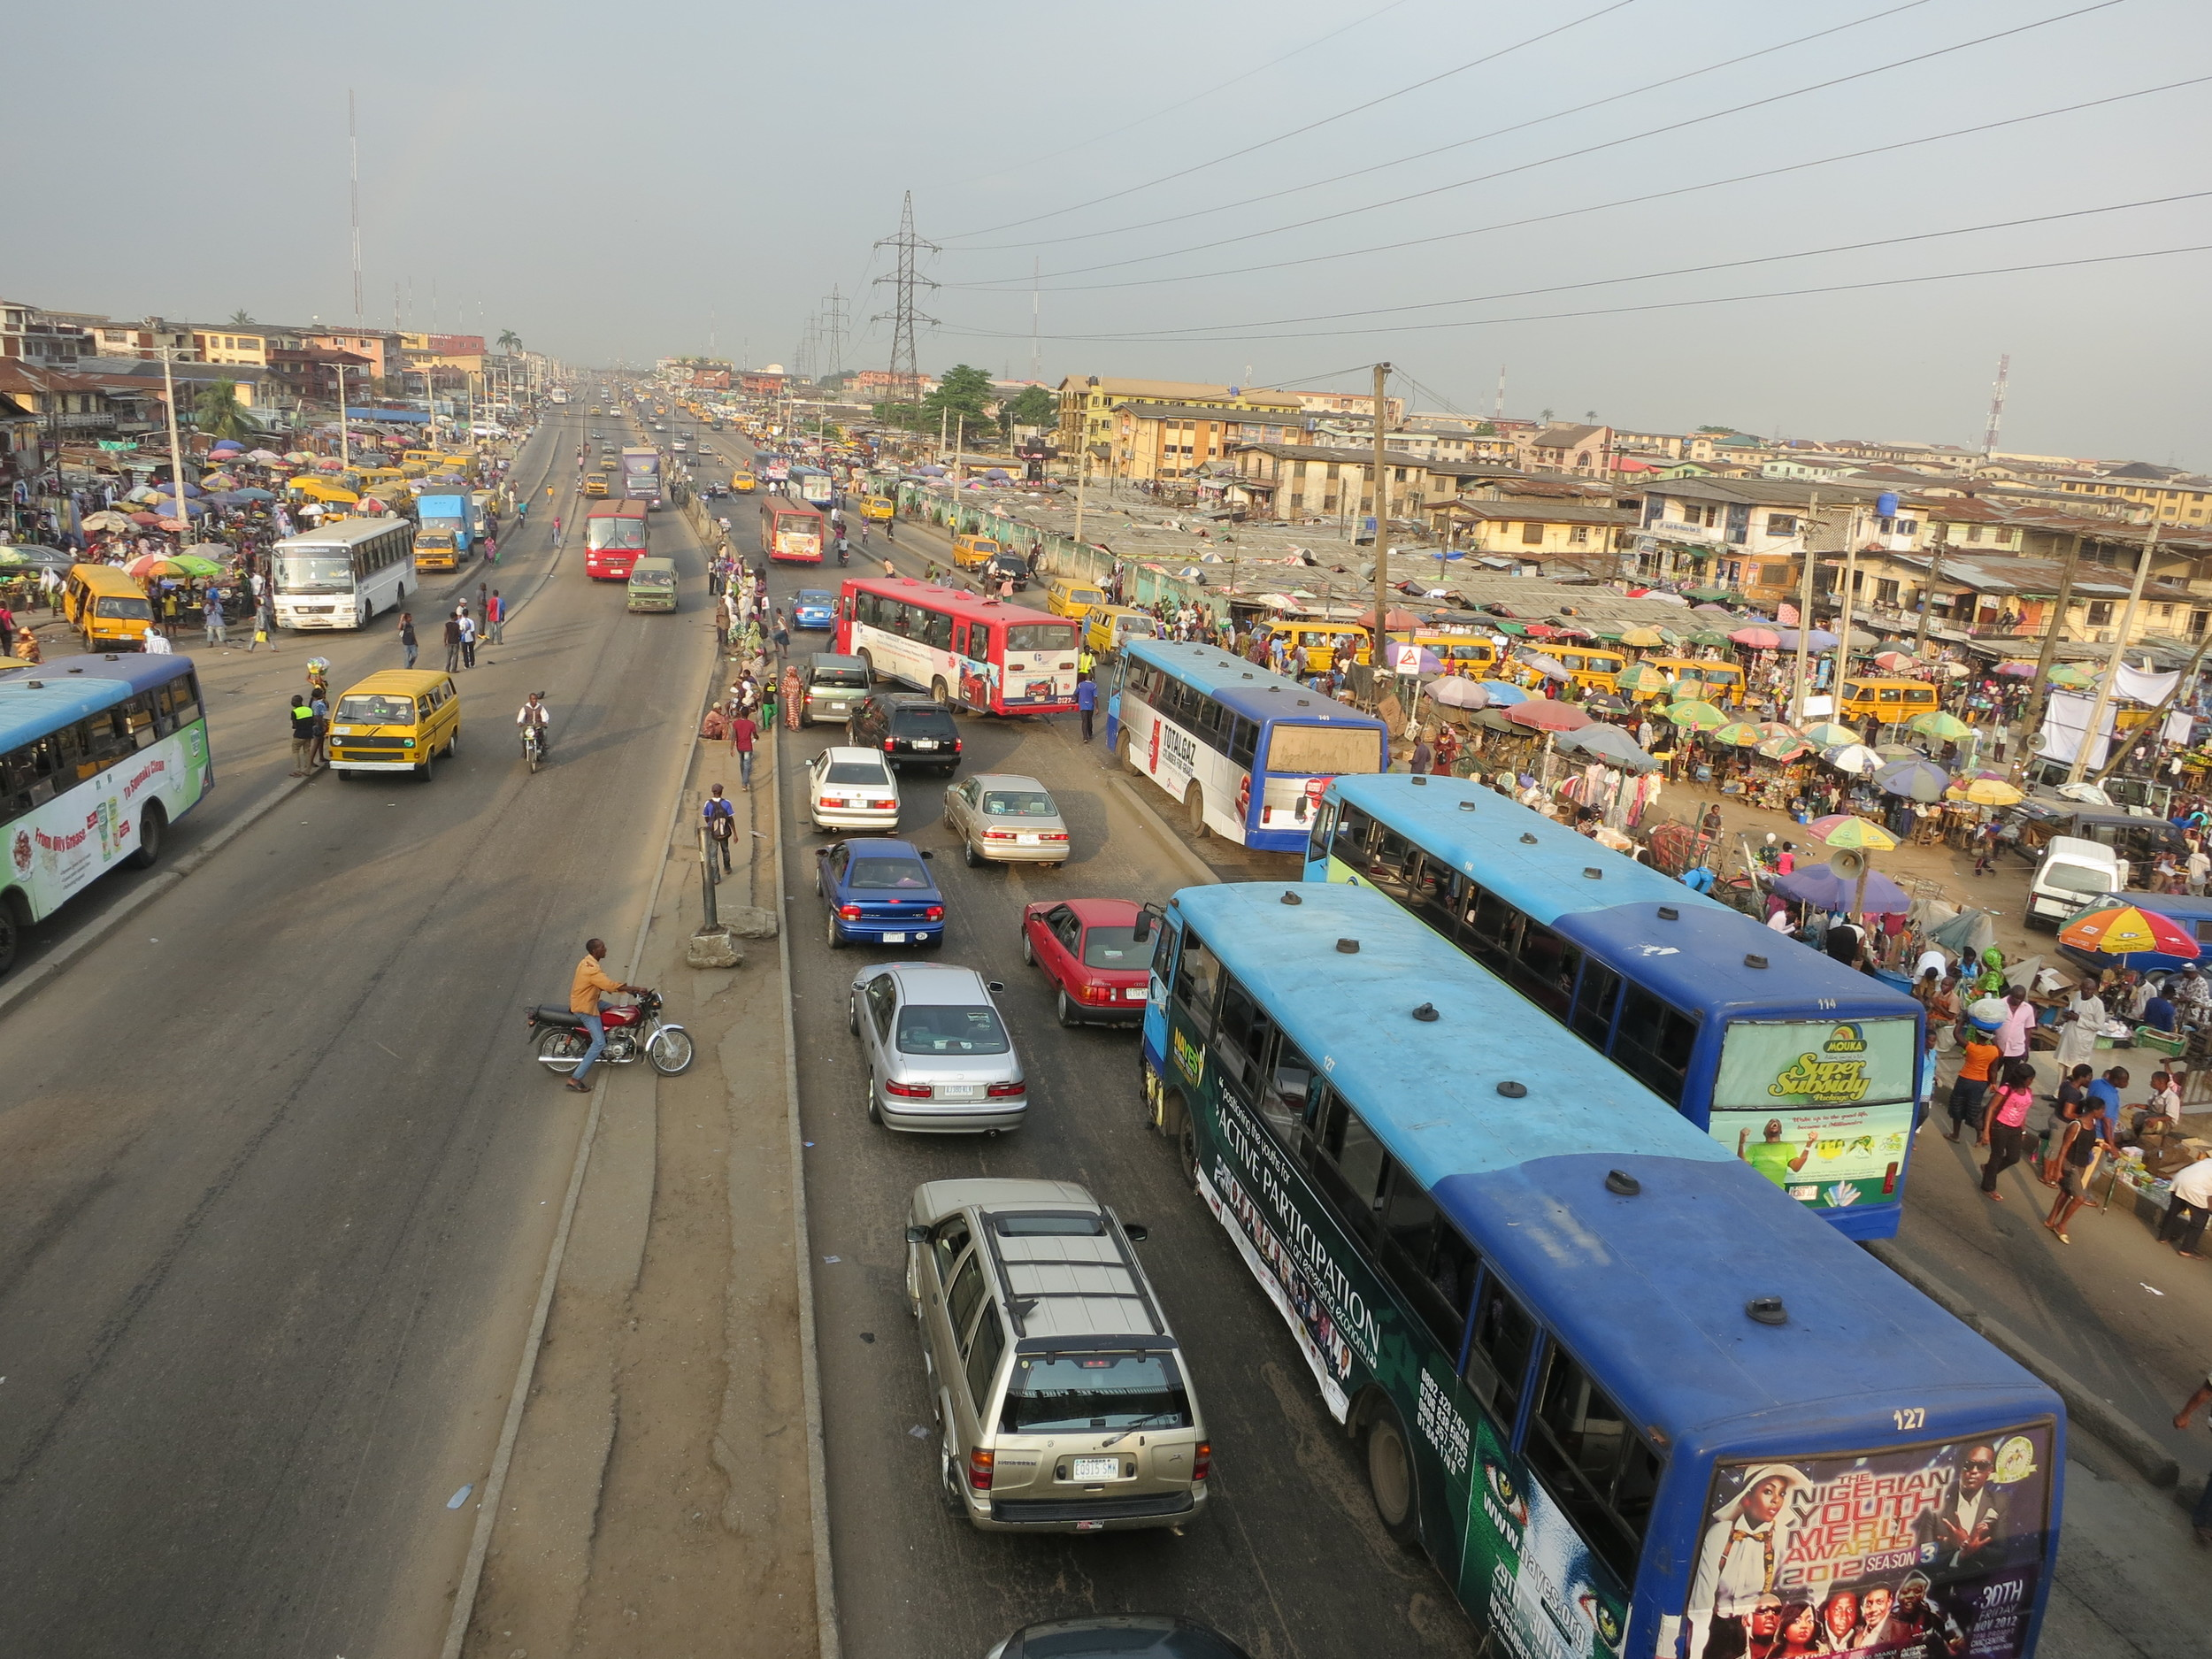 Mega-cities abound in Nigeria, where inadequate urban planning results in massive transportation shortages and traffic jams.